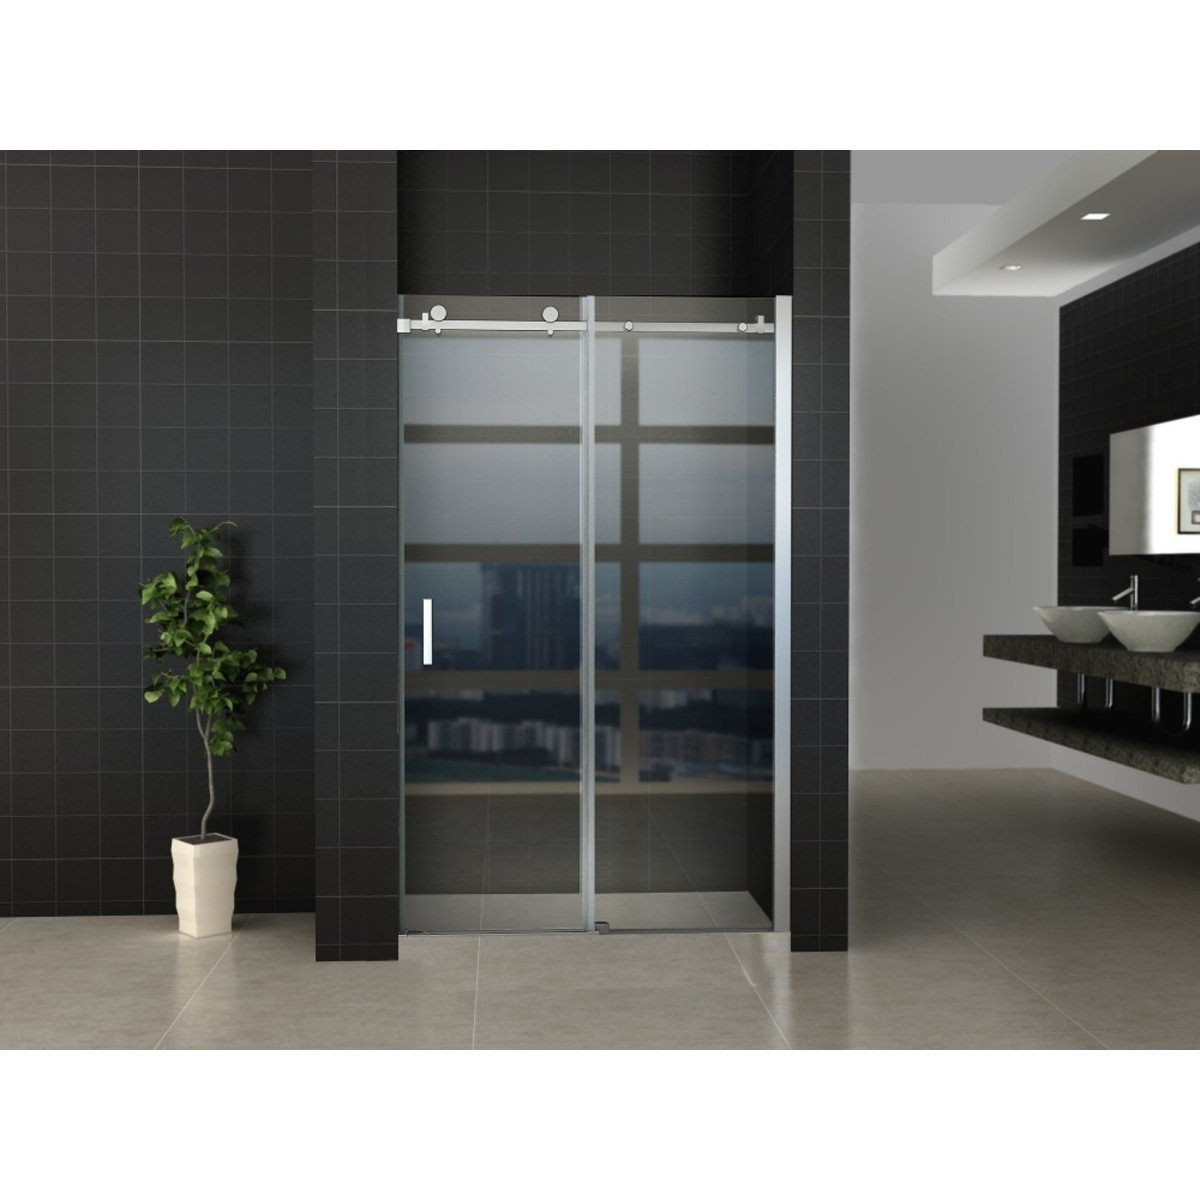 praya nano porte coulissante 110x200cm avec vitre de s curit 8mm traitement anticalcaire argent. Black Bedroom Furniture Sets. Home Design Ideas